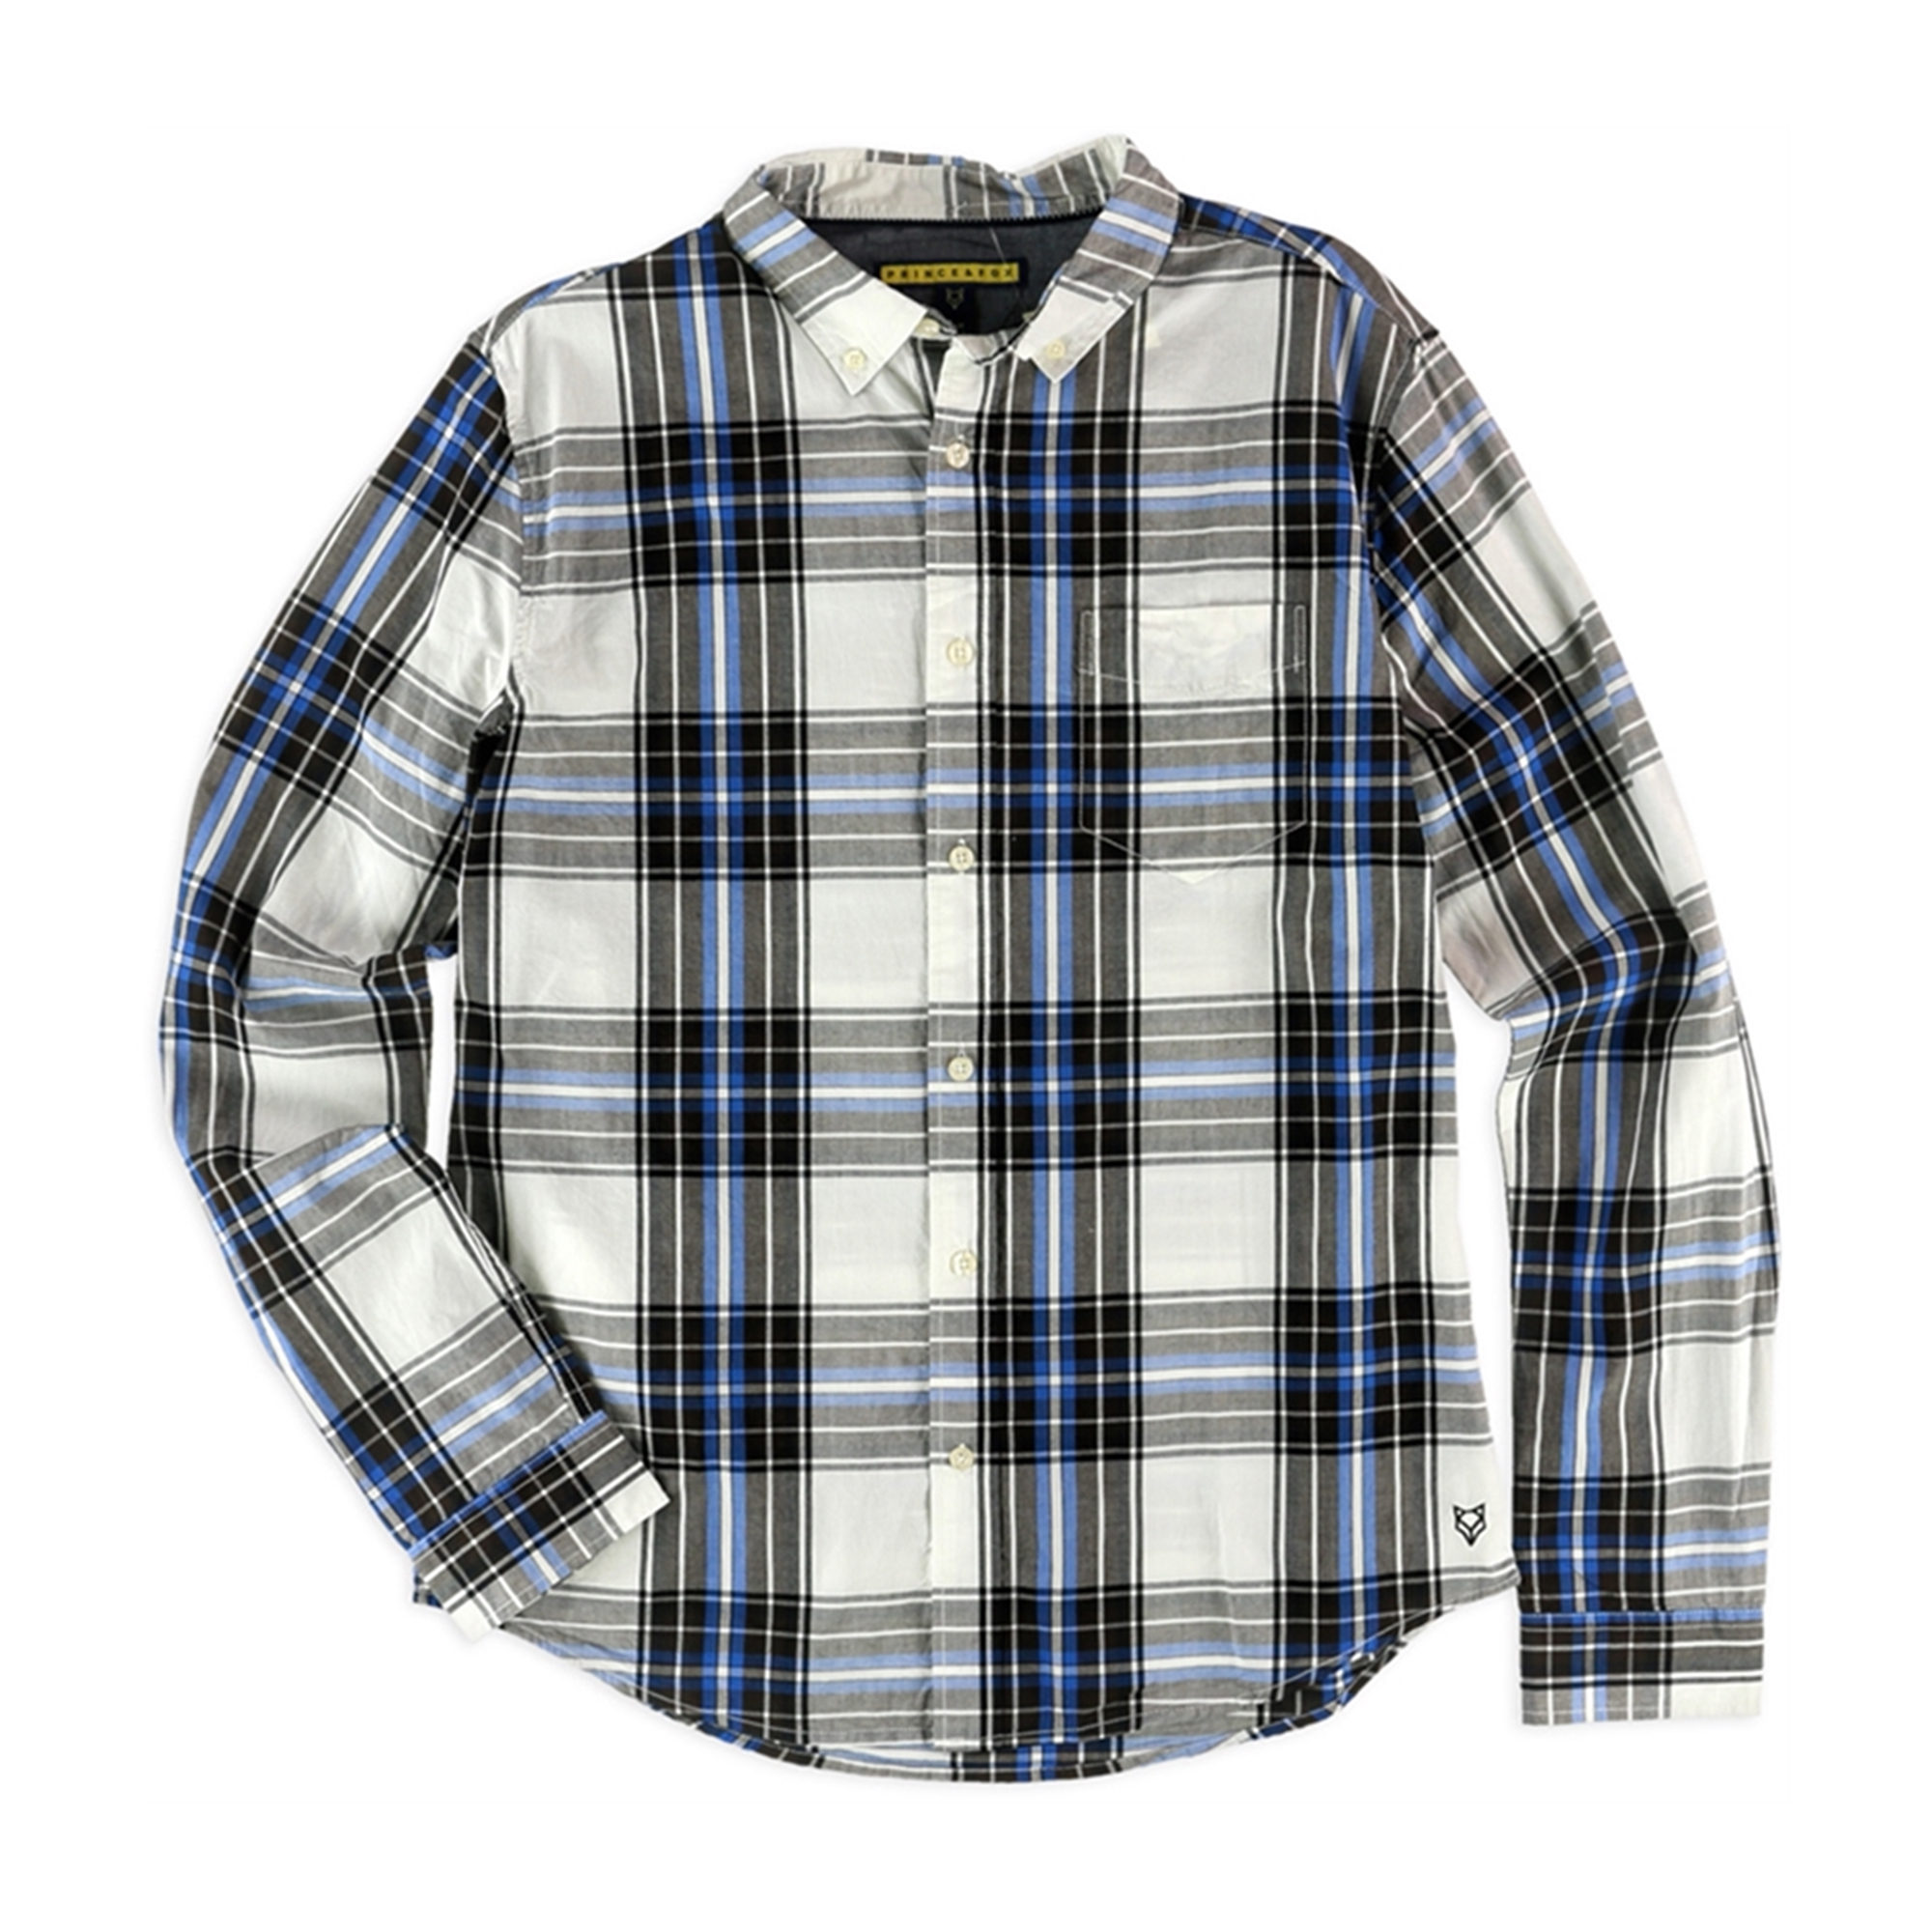 Aeropostale Mens Plaid Button Up Shirt